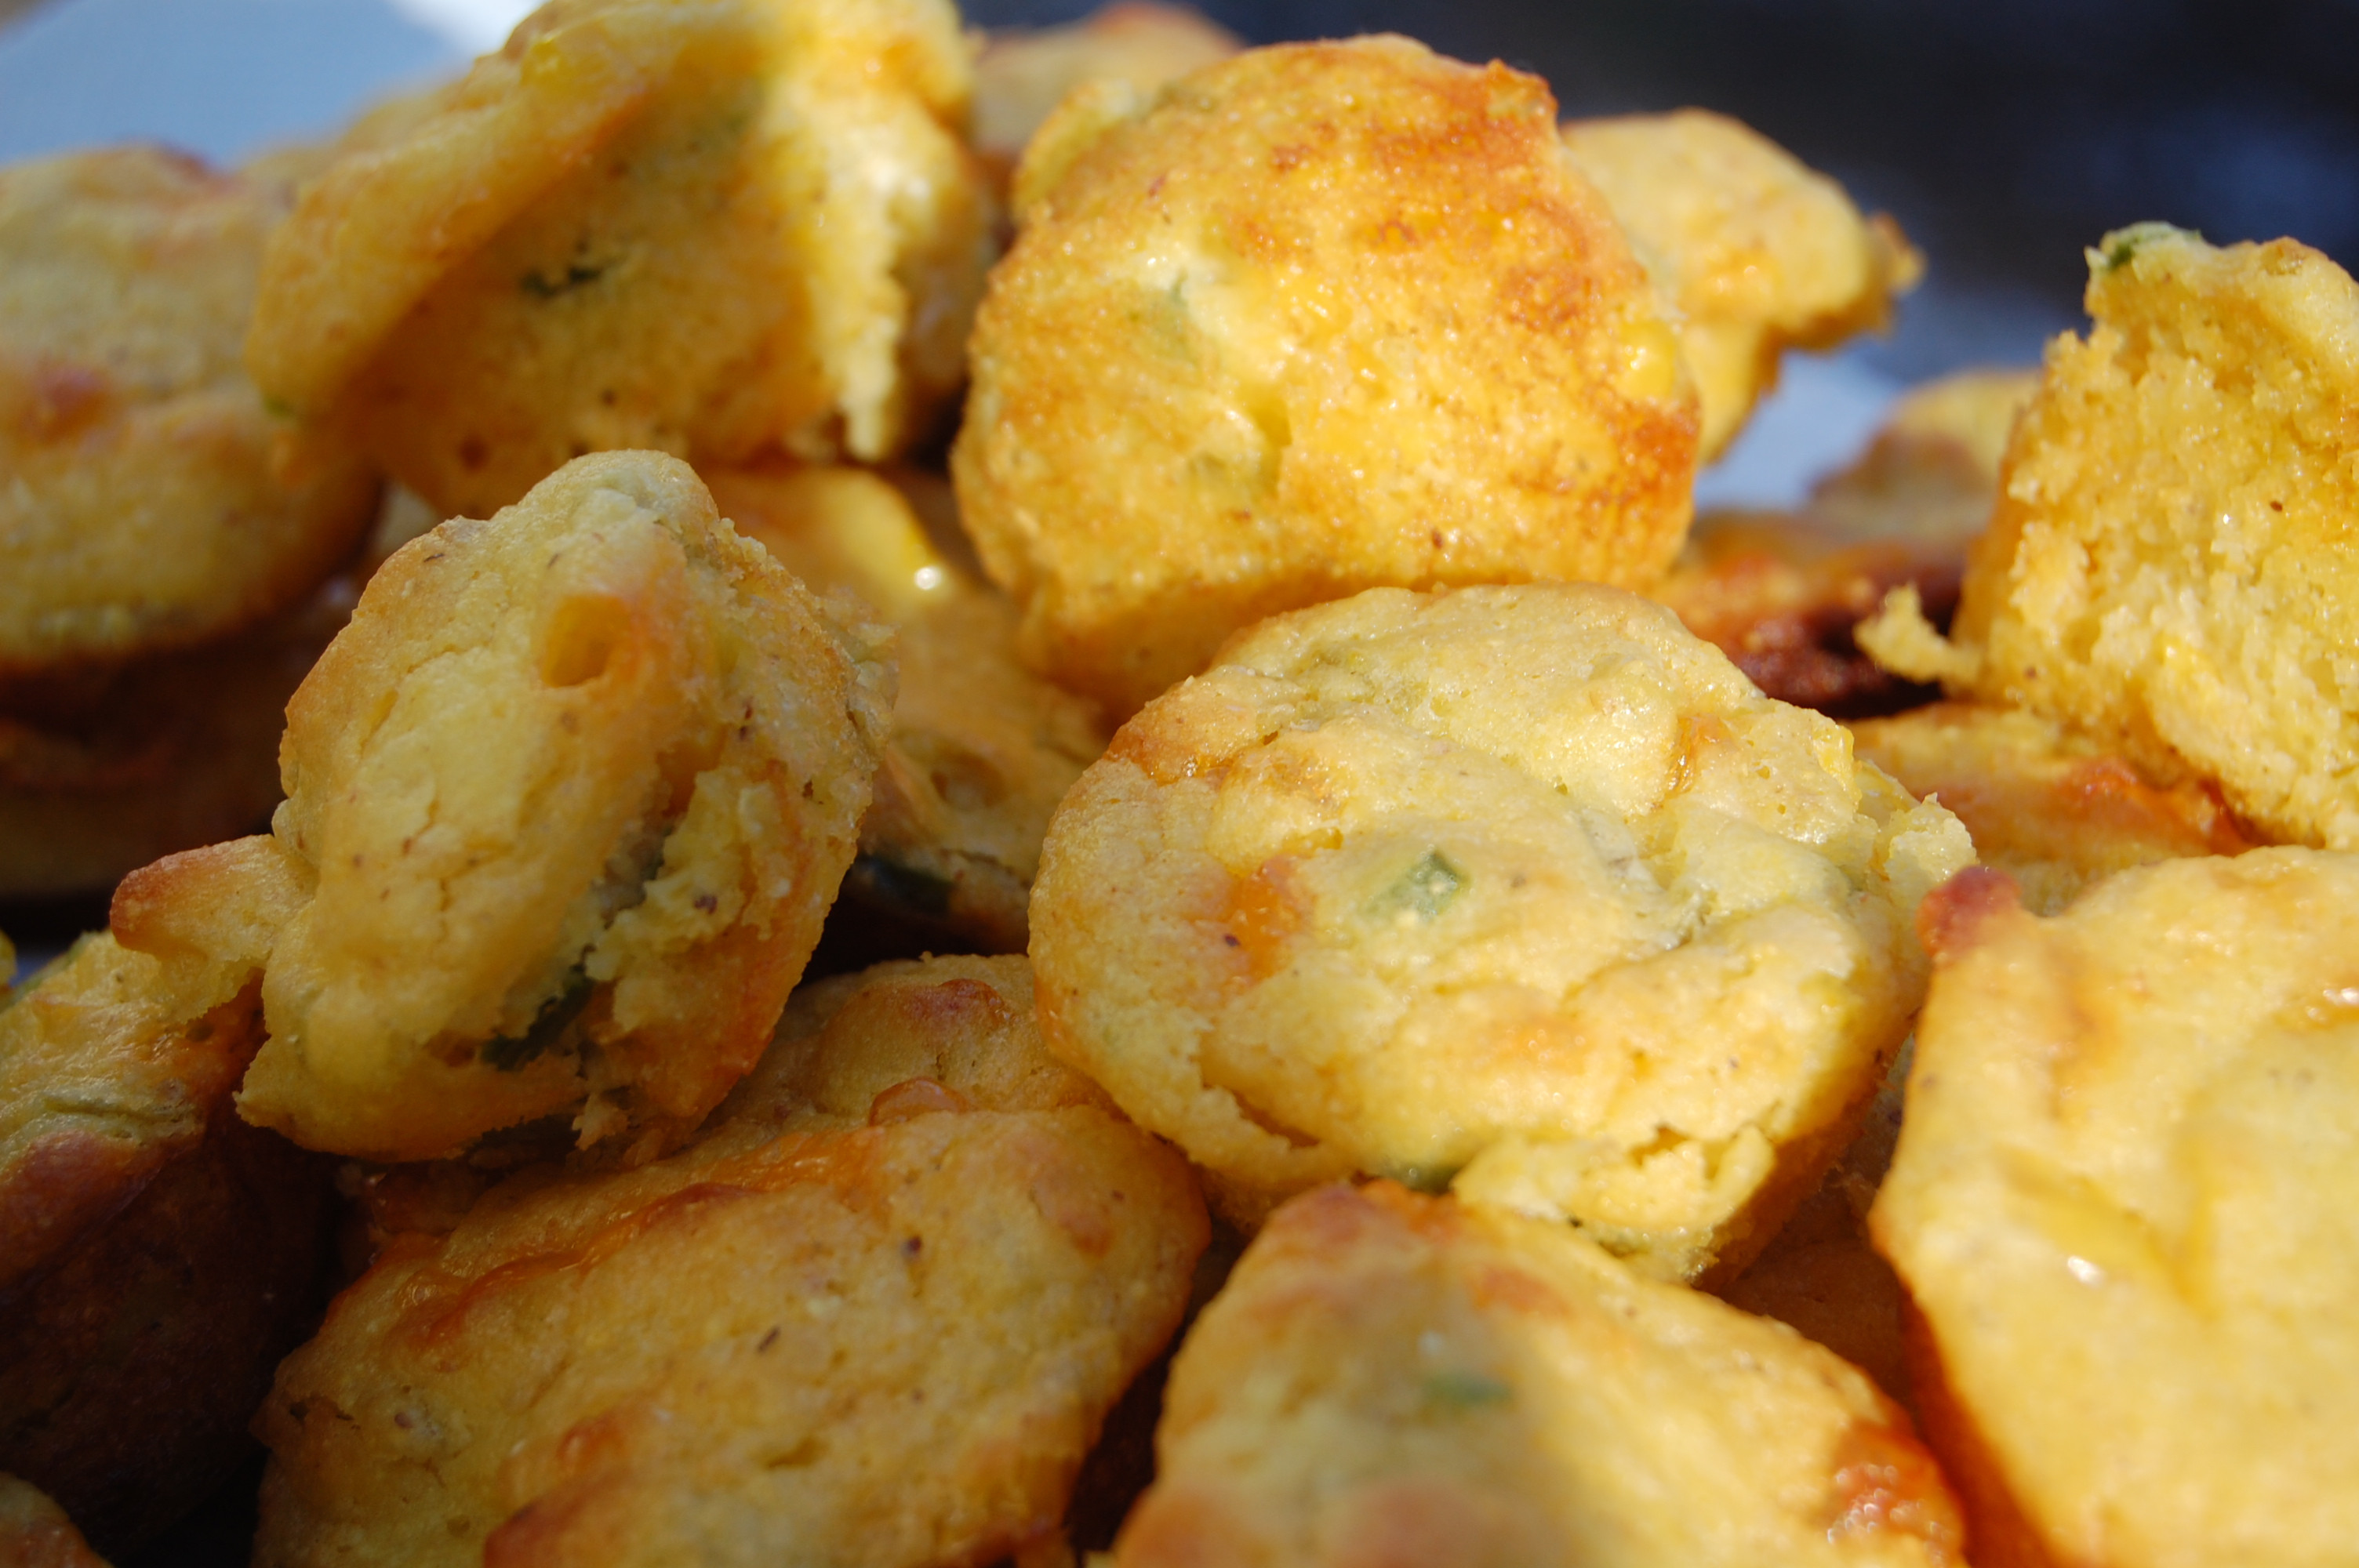 Paula Deen Cornbread  Cornbread Muffins with Cheese and Chilies another Paula